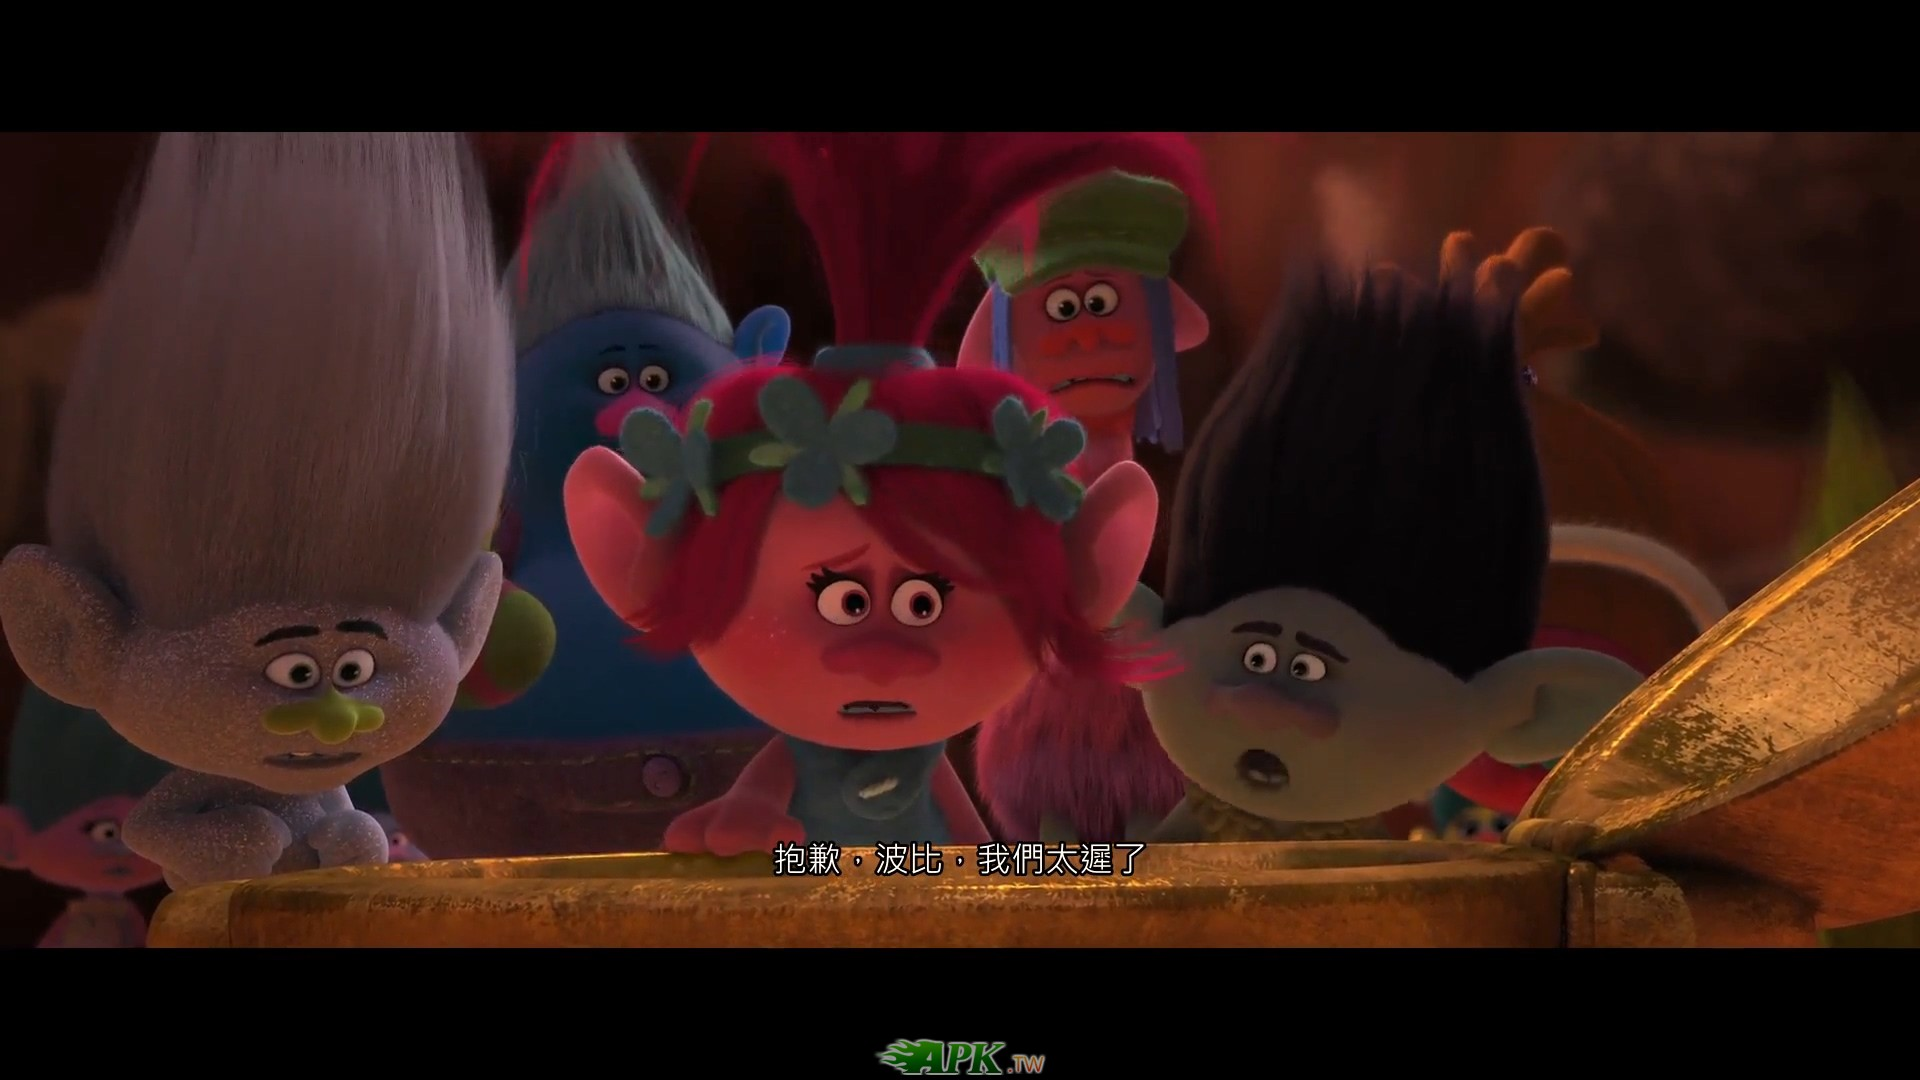 Trolls.2016.1080p.BluRay.H264.AAC-RARBG_x264.mp4_20170315_021228.060.jpg